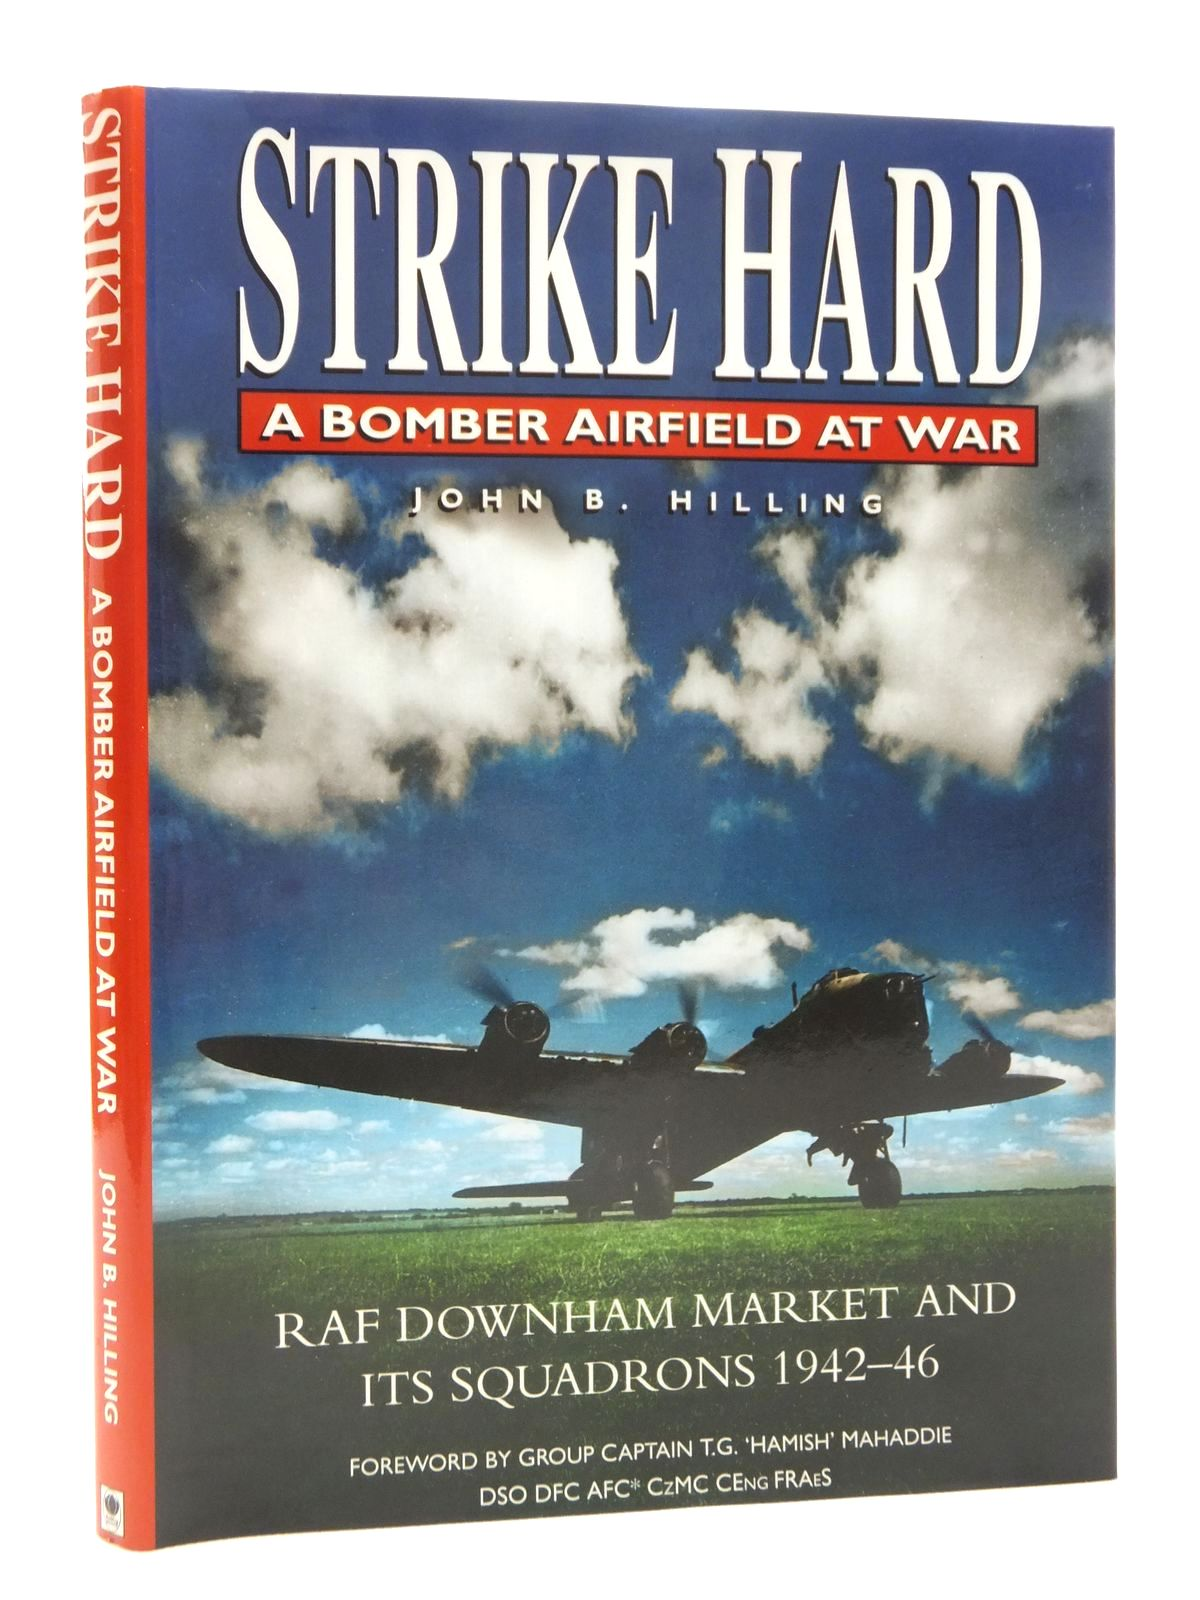 Photo of STRIKE HARD A BOMBER AIRFIELD AT WAR written by Hilling, John B. published by Budding Books (STOCK CODE: 1610082)  for sale by Stella & Rose's Books